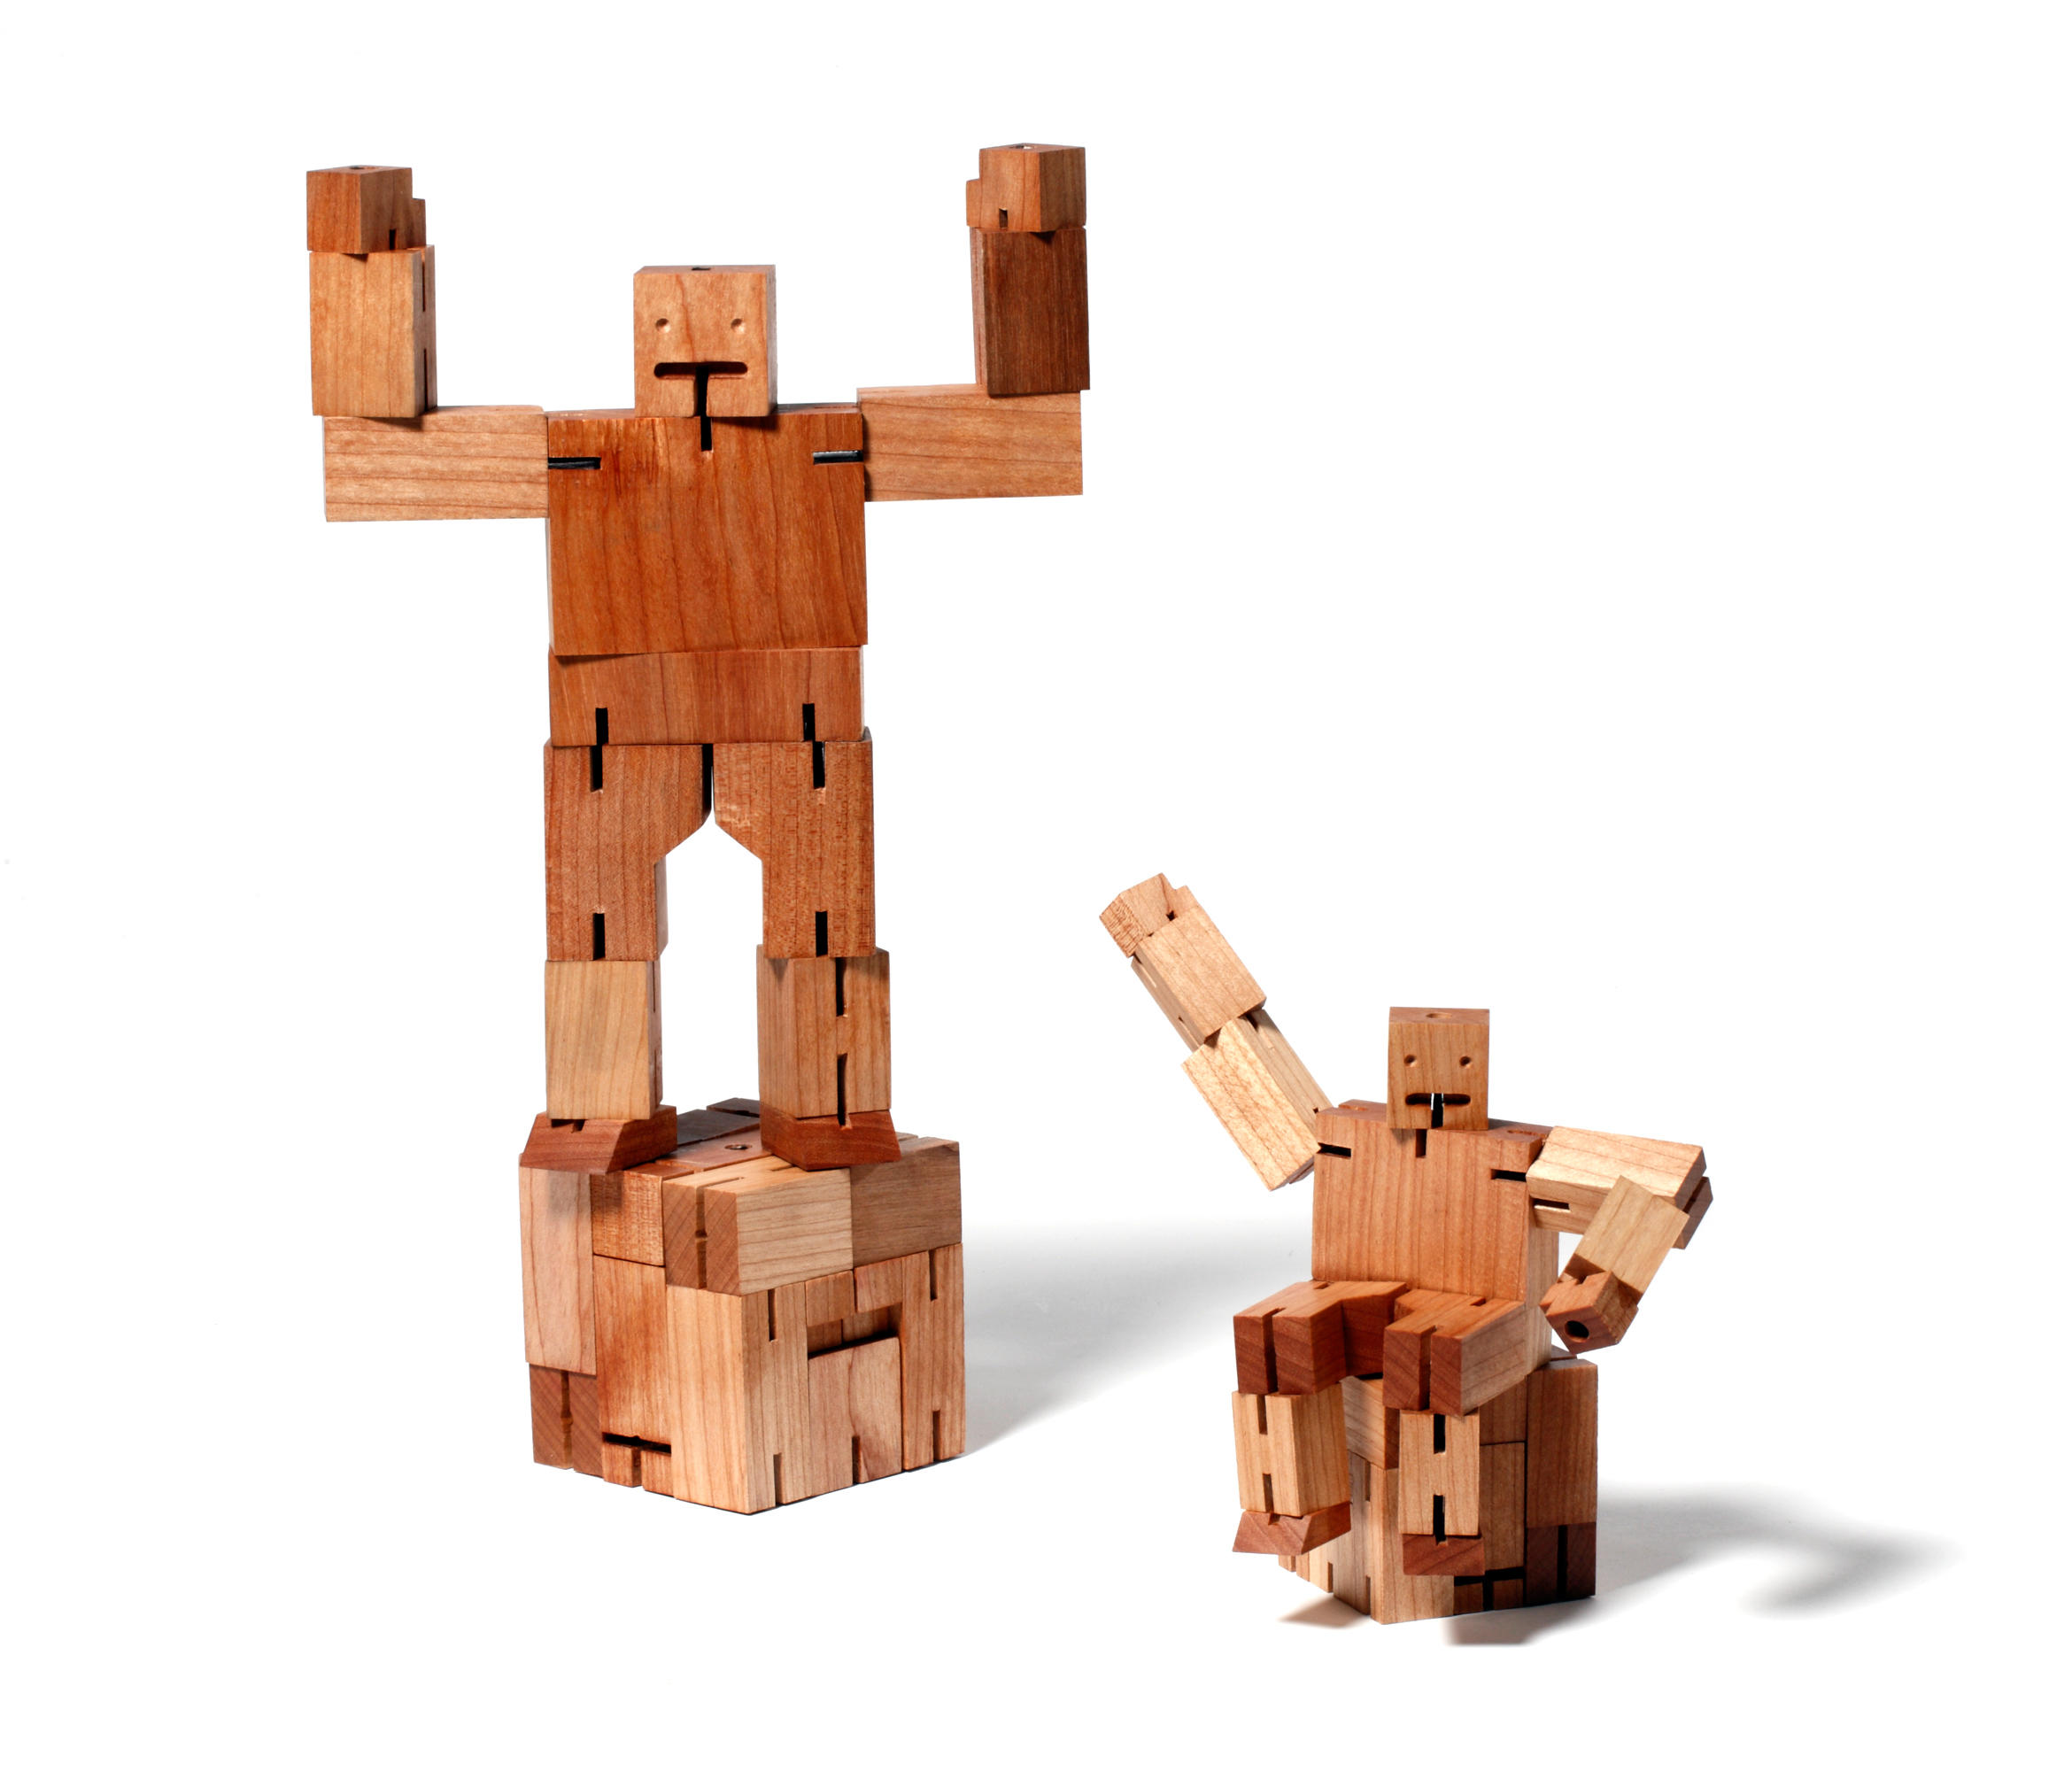 Cubebot Toys From David Weeks Studio Architonic